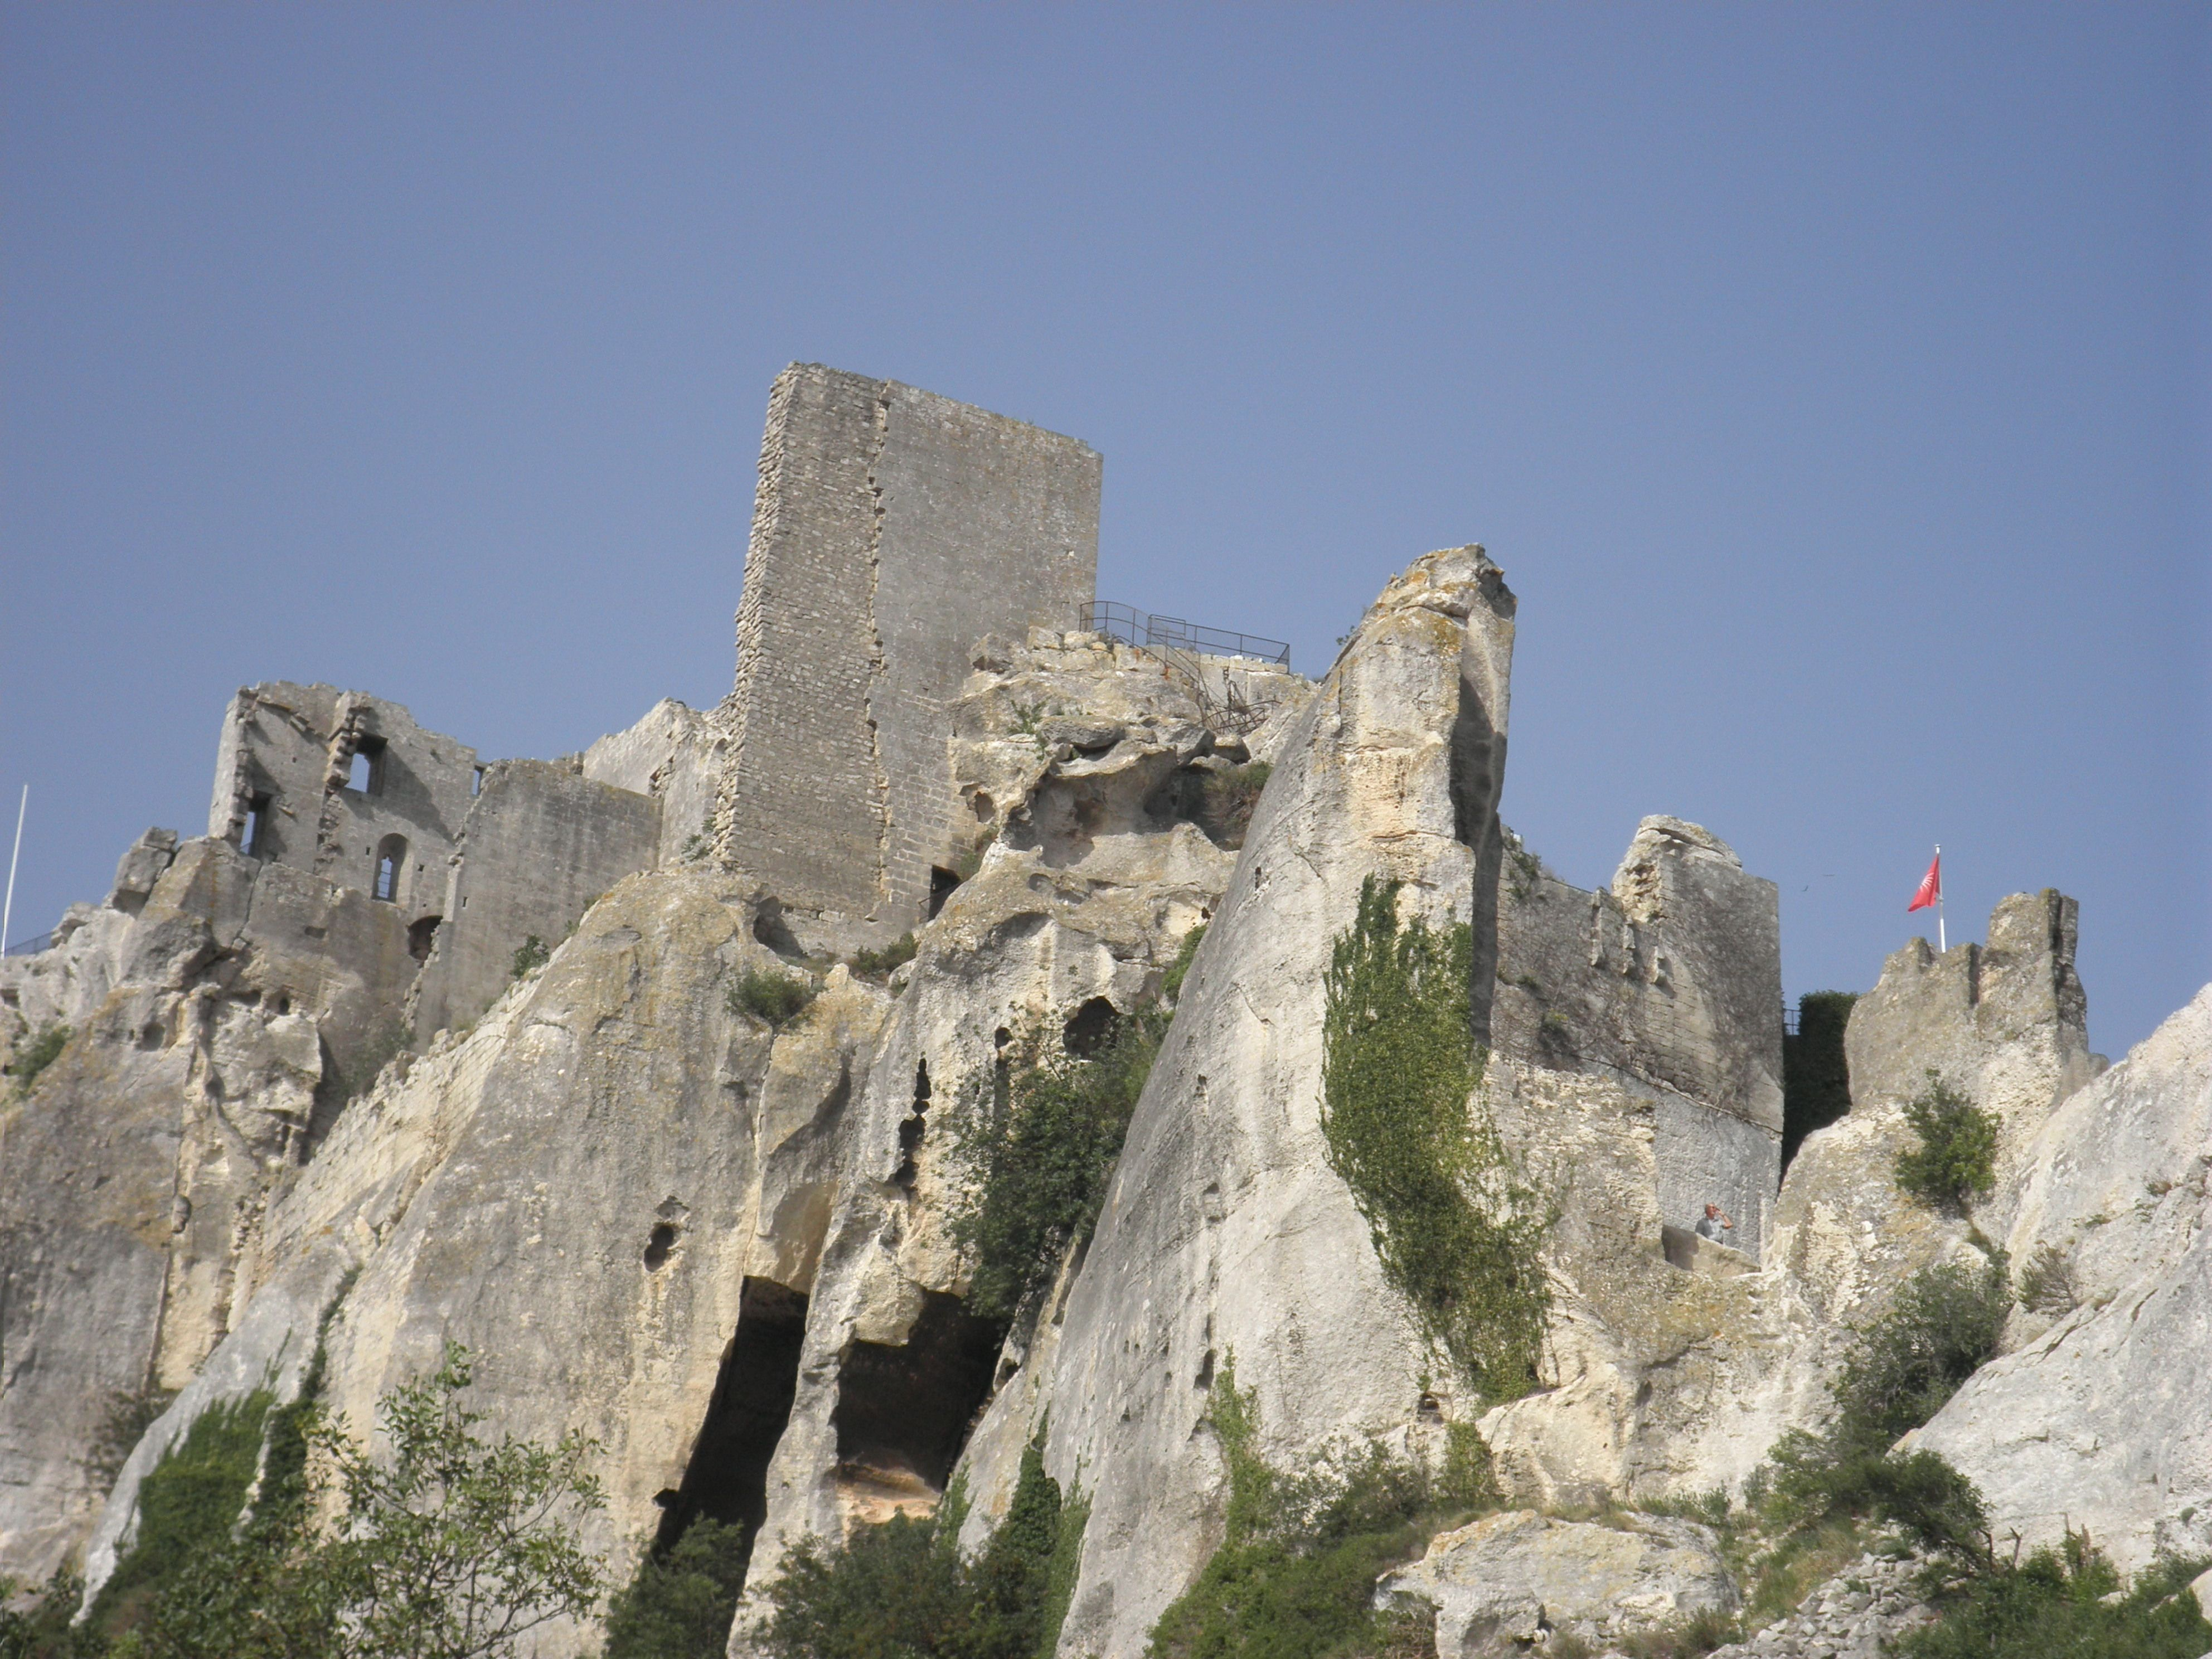 Looking Up At The Picturesque Castle Ruins At Les Baux De Provence In Southern France The Defensive Capabilities Of Baux Have France Castle Ruins Picturesque